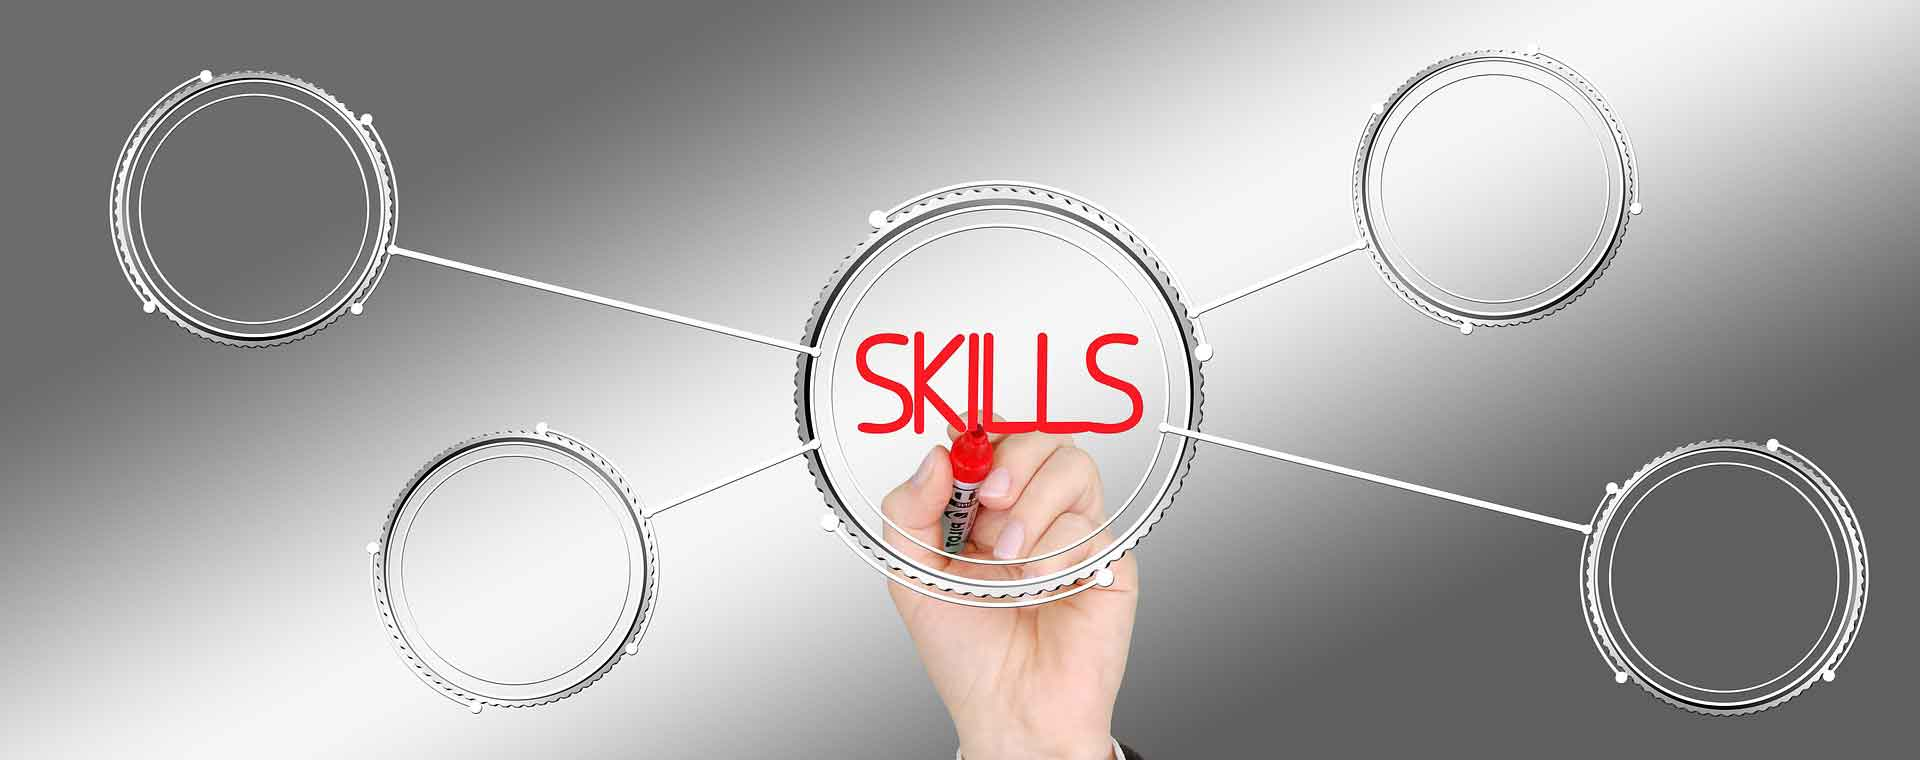 skills-competence-recrutement-fonction-rh-carriere-job